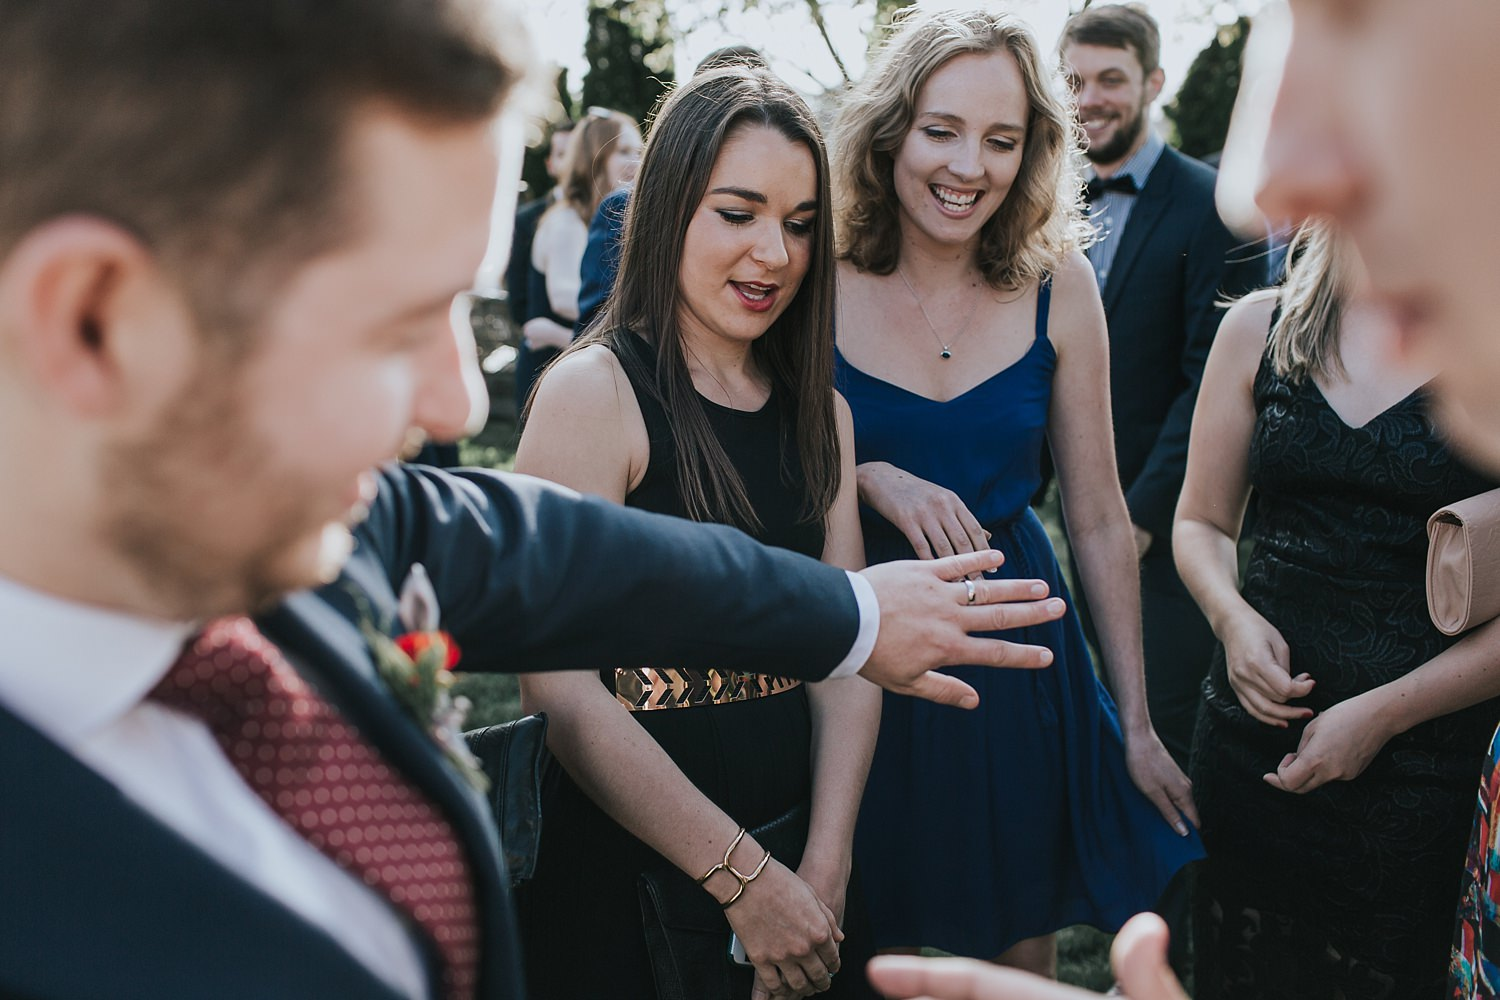 groom shows off his ring to wedding guests